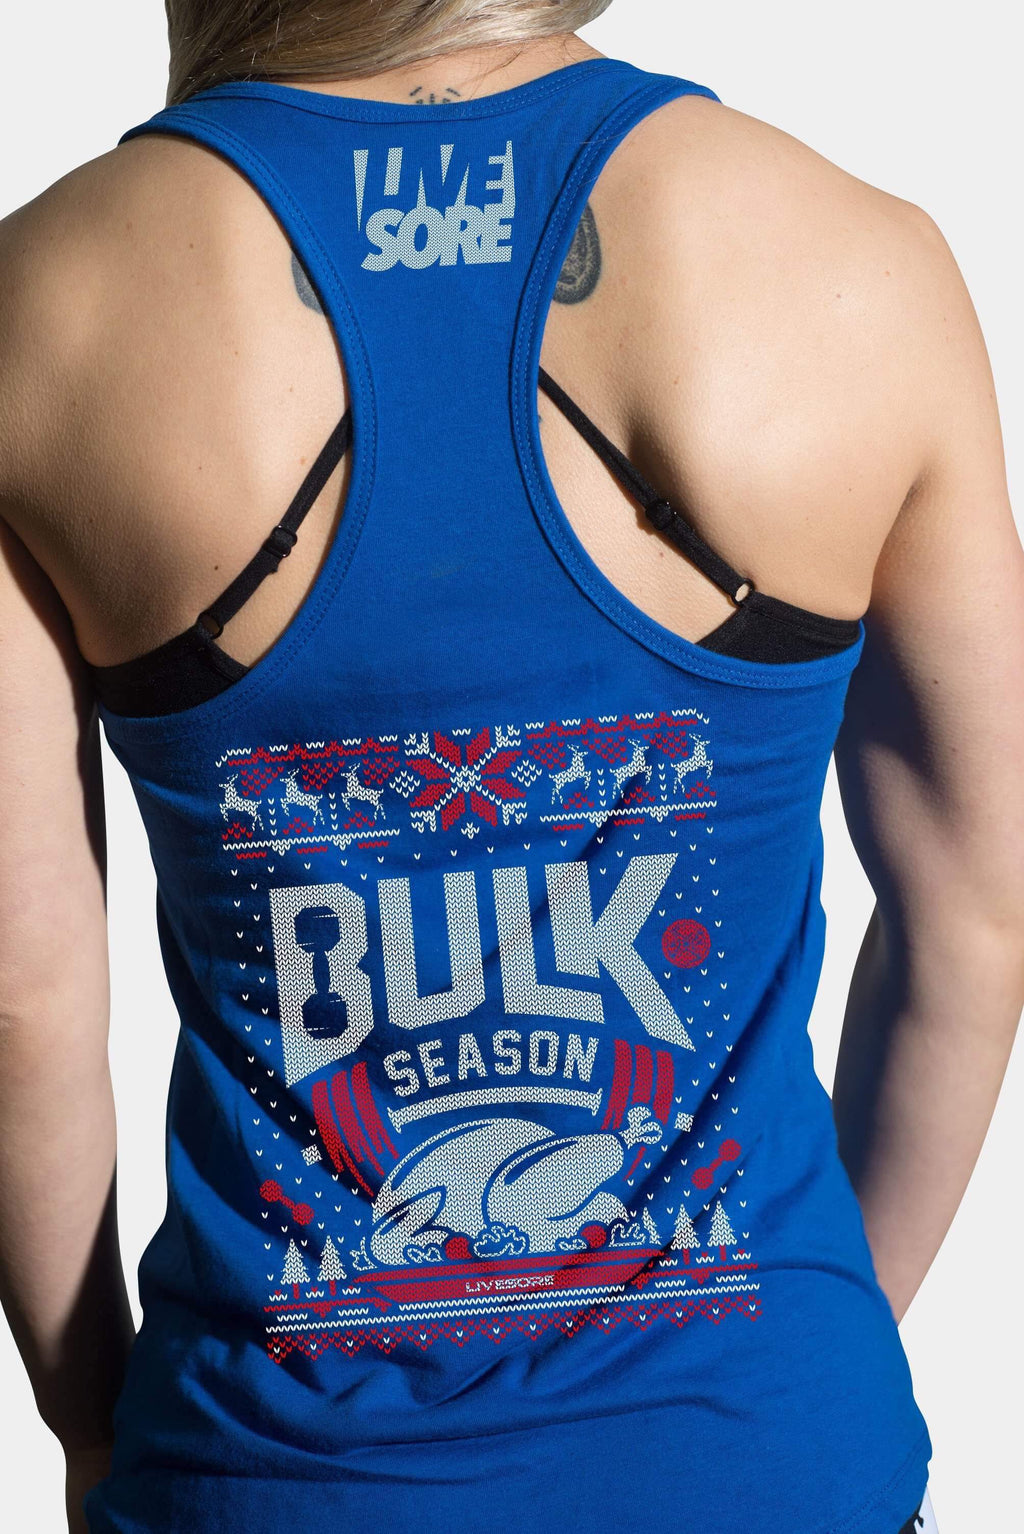 TIS THE SEASON WOMENS TANK TOP - LiveSore Australia